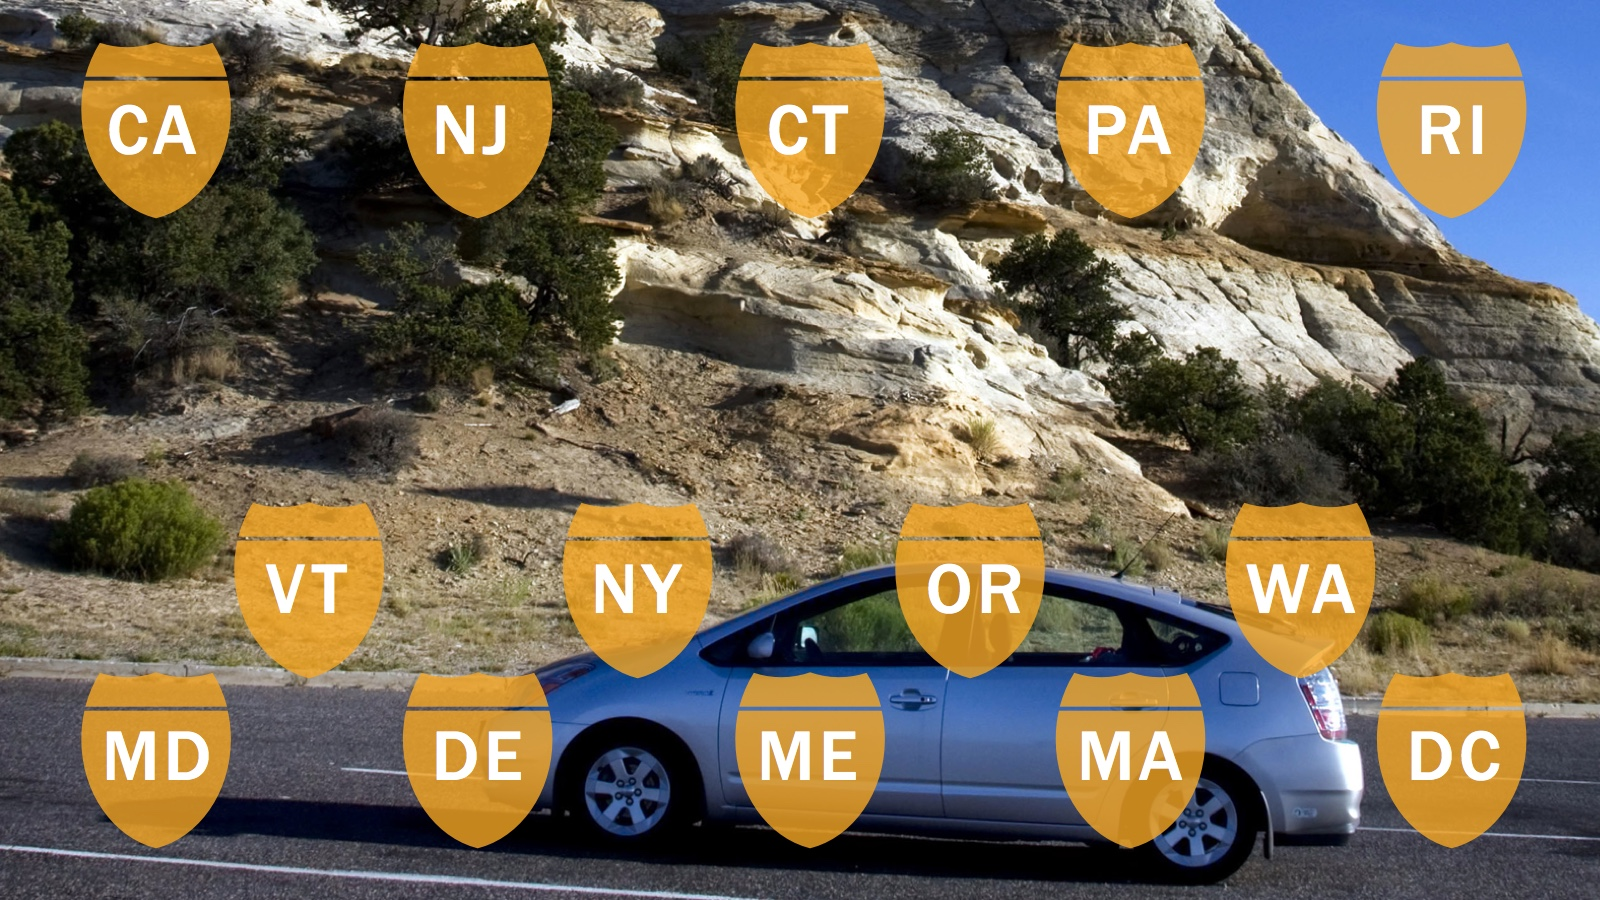 <h4>ACTION & RESULTS</h4><h5>We have cleaner cars on the road today due to our action and advocacy on the national level and in 13 states and Washington, D.C.</h5><em>Colin Grey</em>